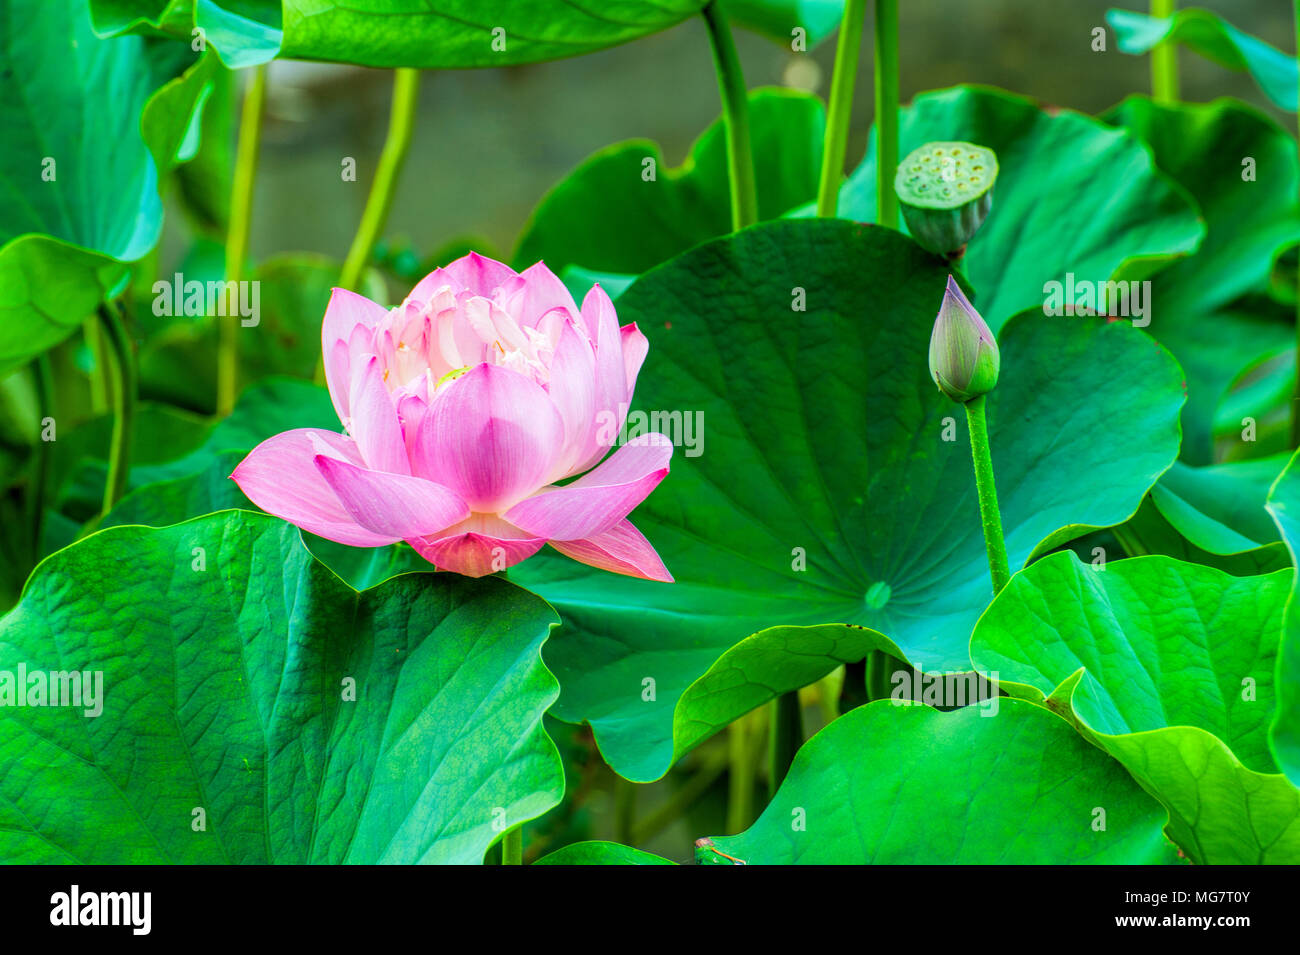 Closeup Of A Pink Lotus Flower Surrounded By Large Green Lotus